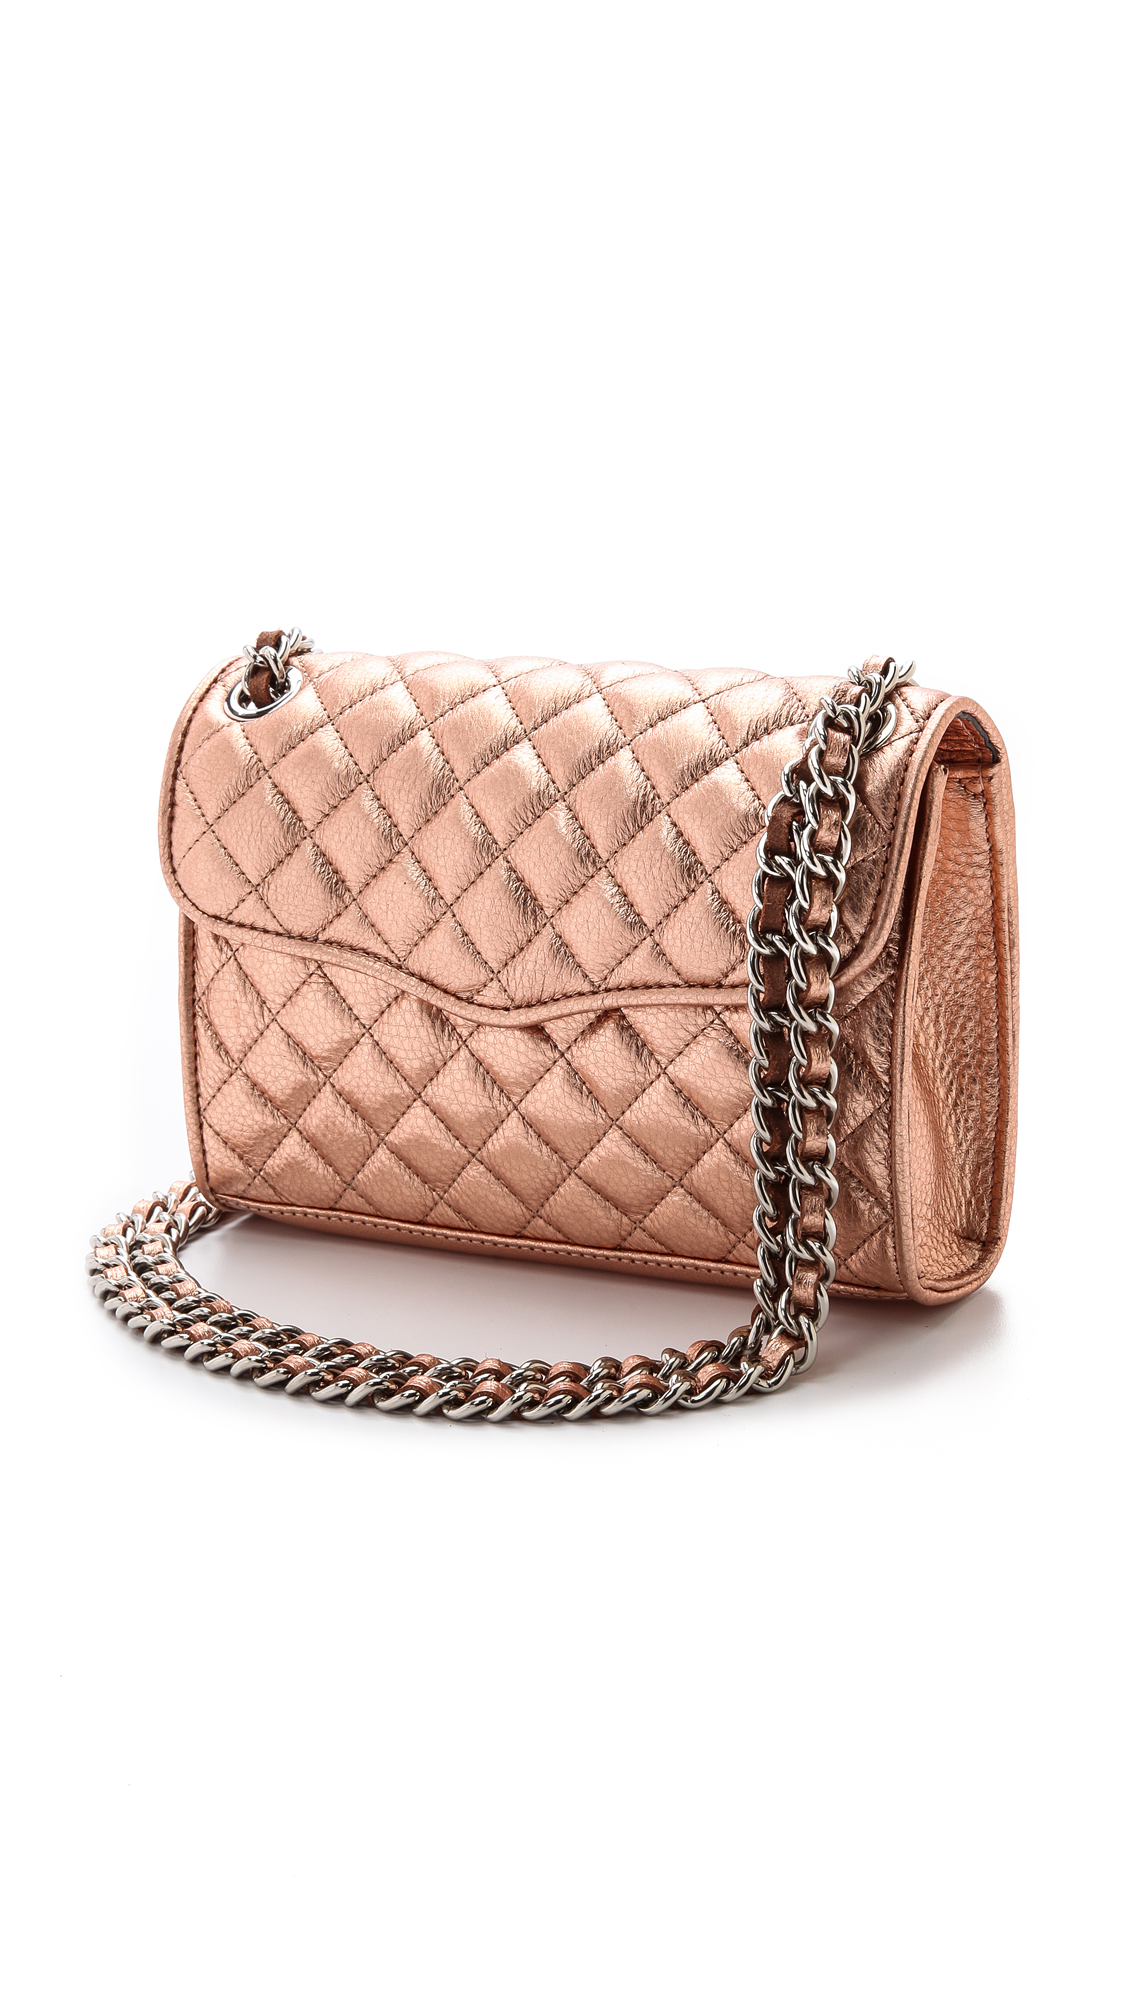 Rebecca minkoff Quilted Mini Affair Bag Rose Gold in Pink | Lyst